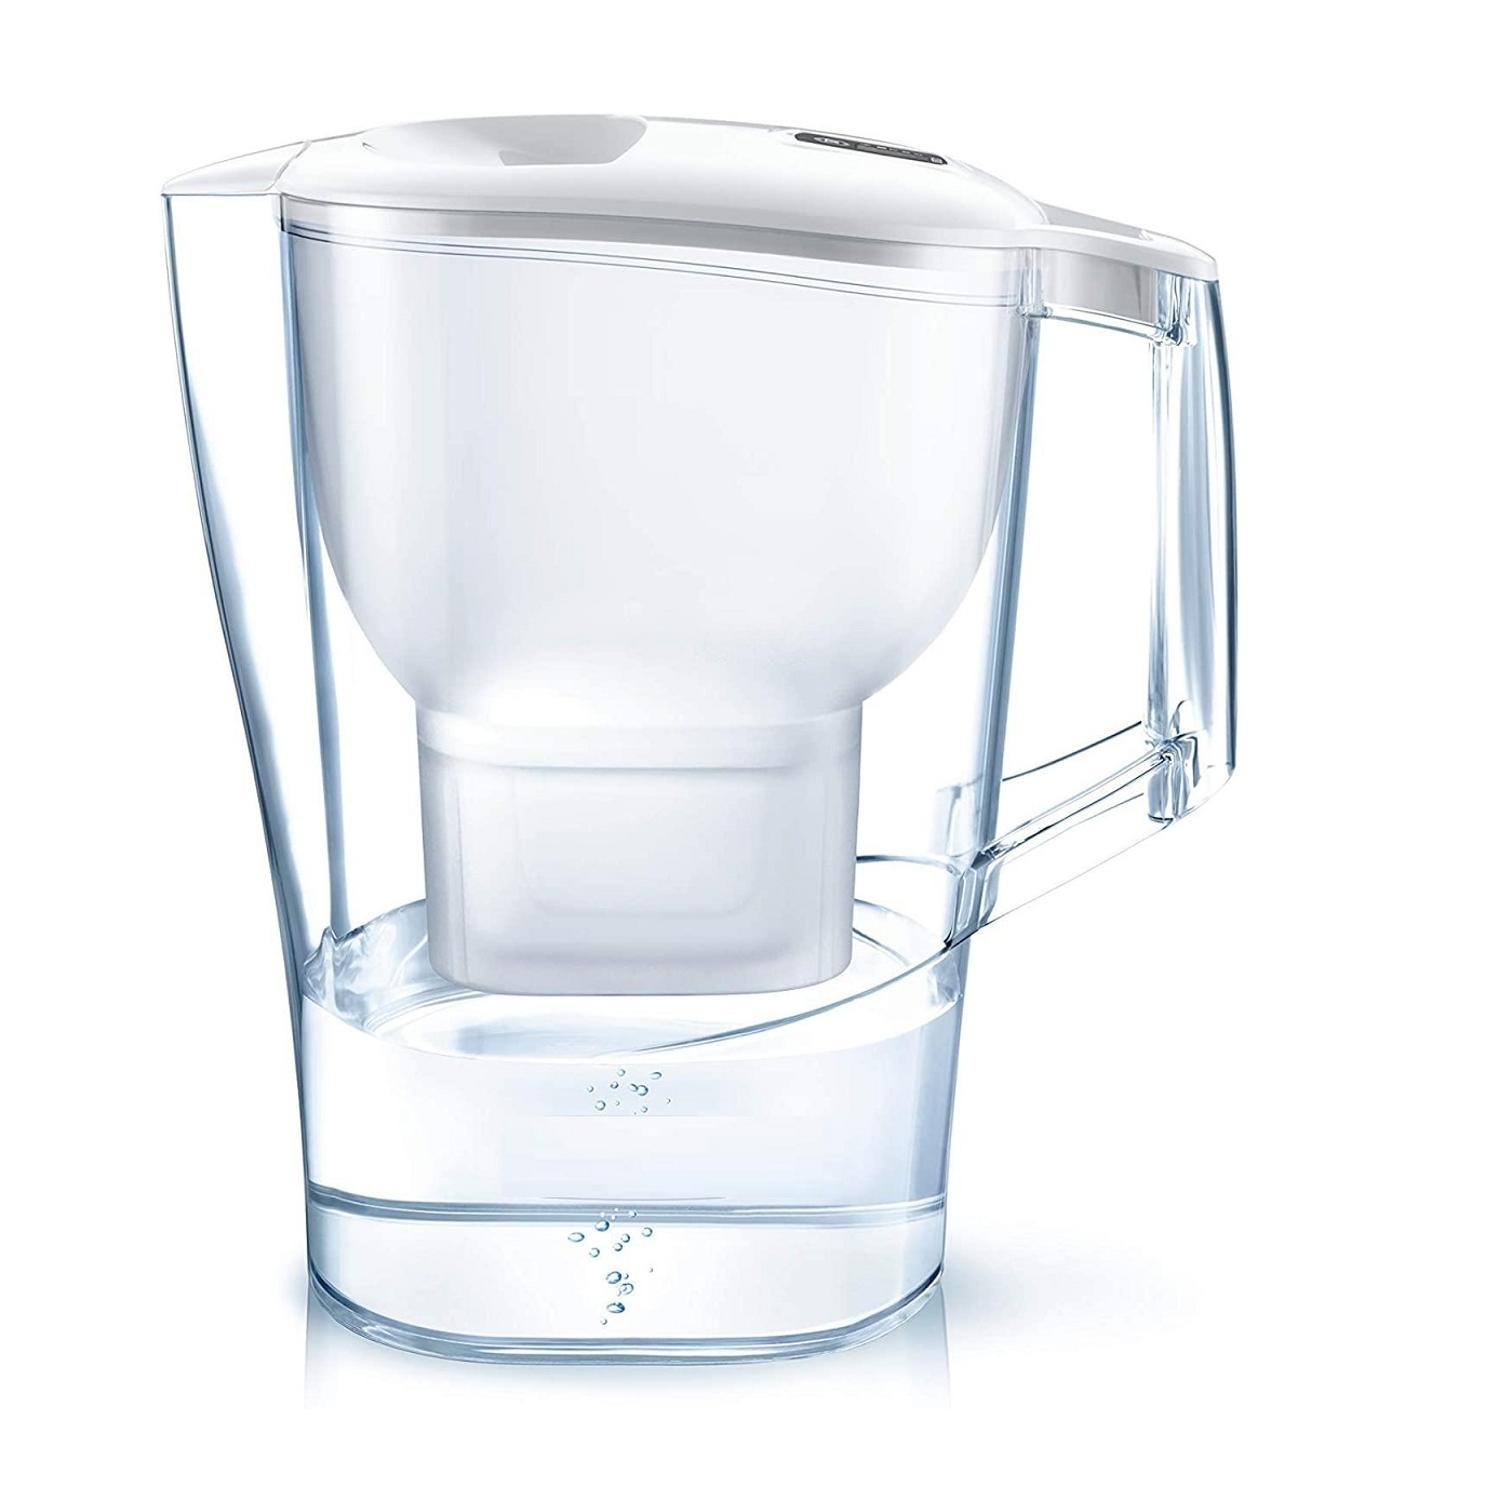 Filtered water jug with 1 cartridge water filter reduces lime and chlorine, filtered water for optimal flavor, 3.5L